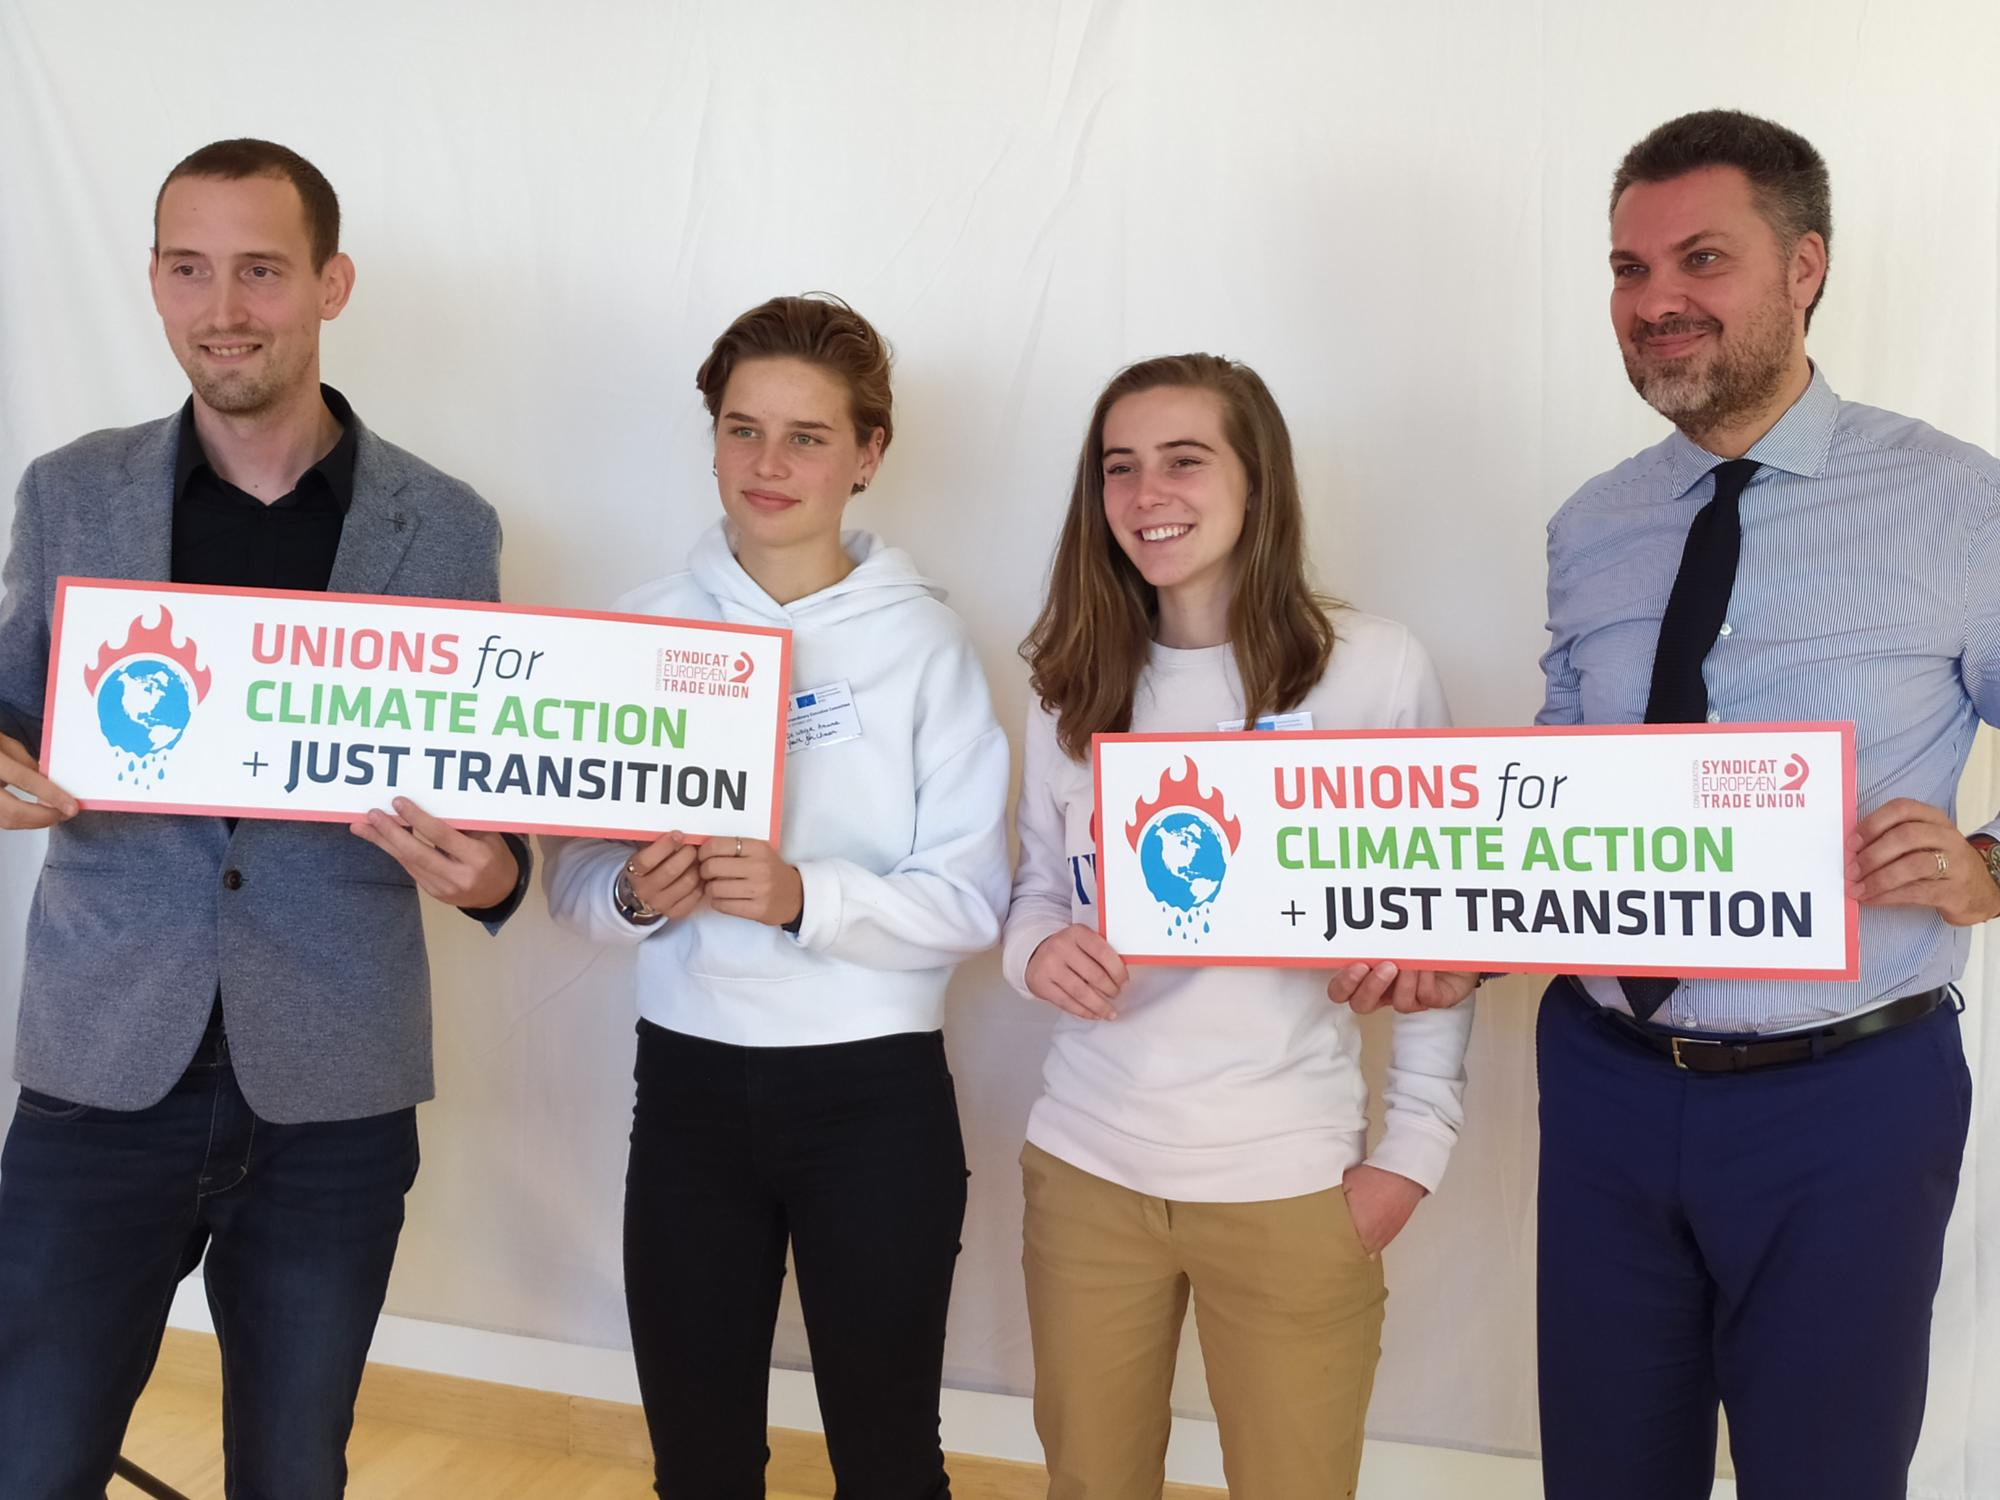 ETUC General Secretary Luca Visentini and Confederal Secretary Ludovic Voet with Anuna de Wever and Adelaide Charlier of the Youth for Climate movement